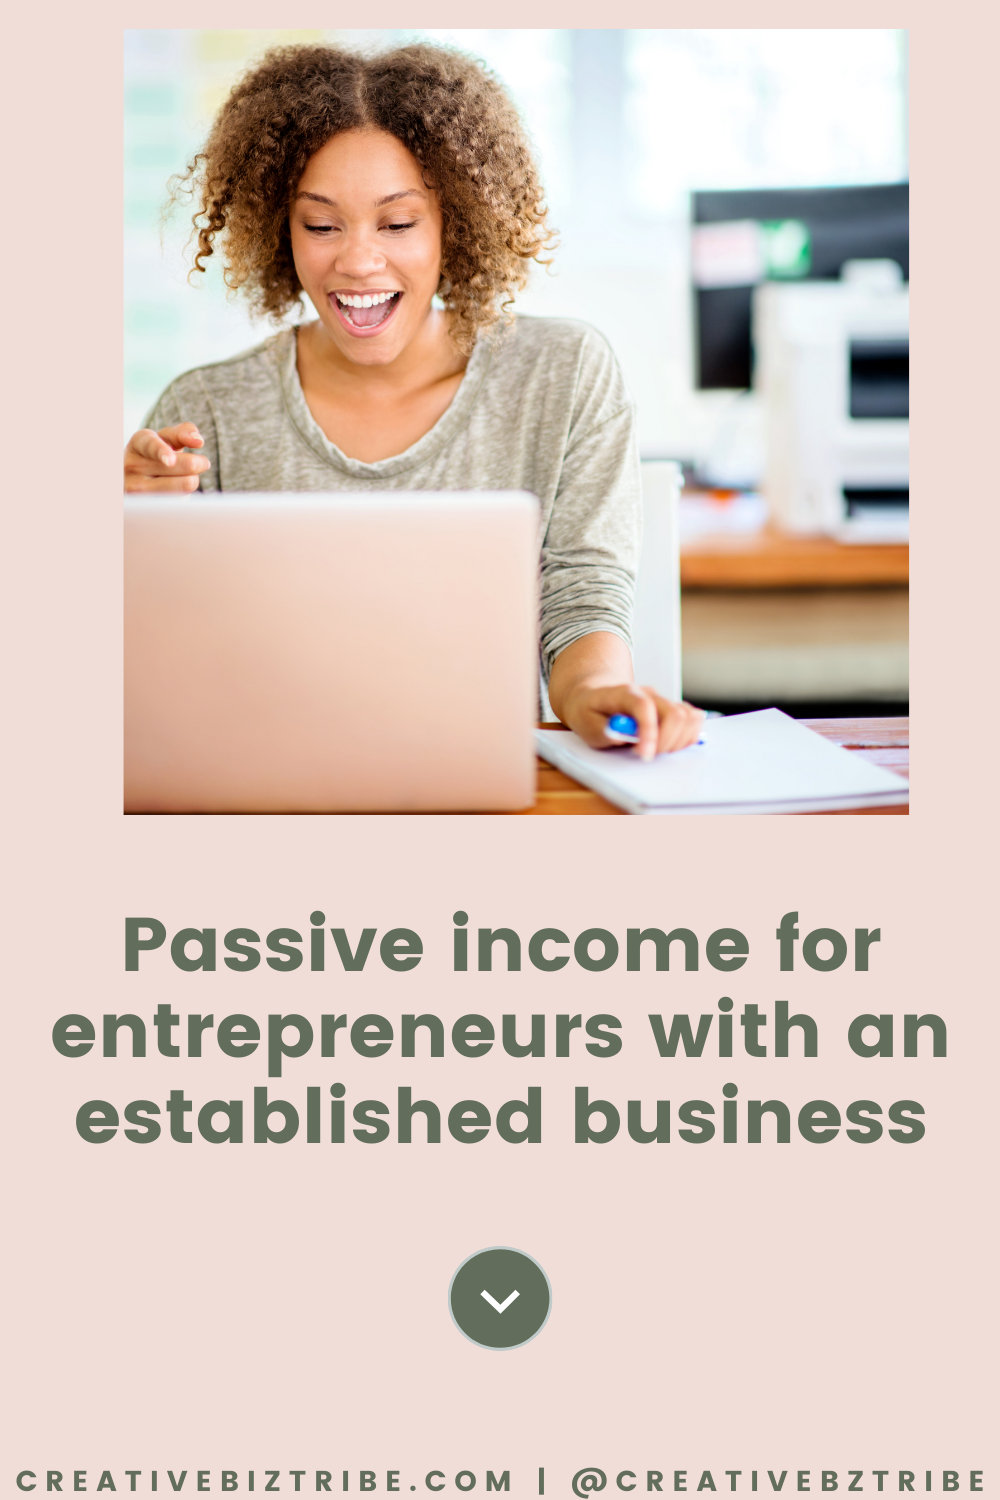 Passive Income creativebiztribe.com #makemoney #onlinebusiness Creative Business Tribe {What is this? Do I belong?} #create